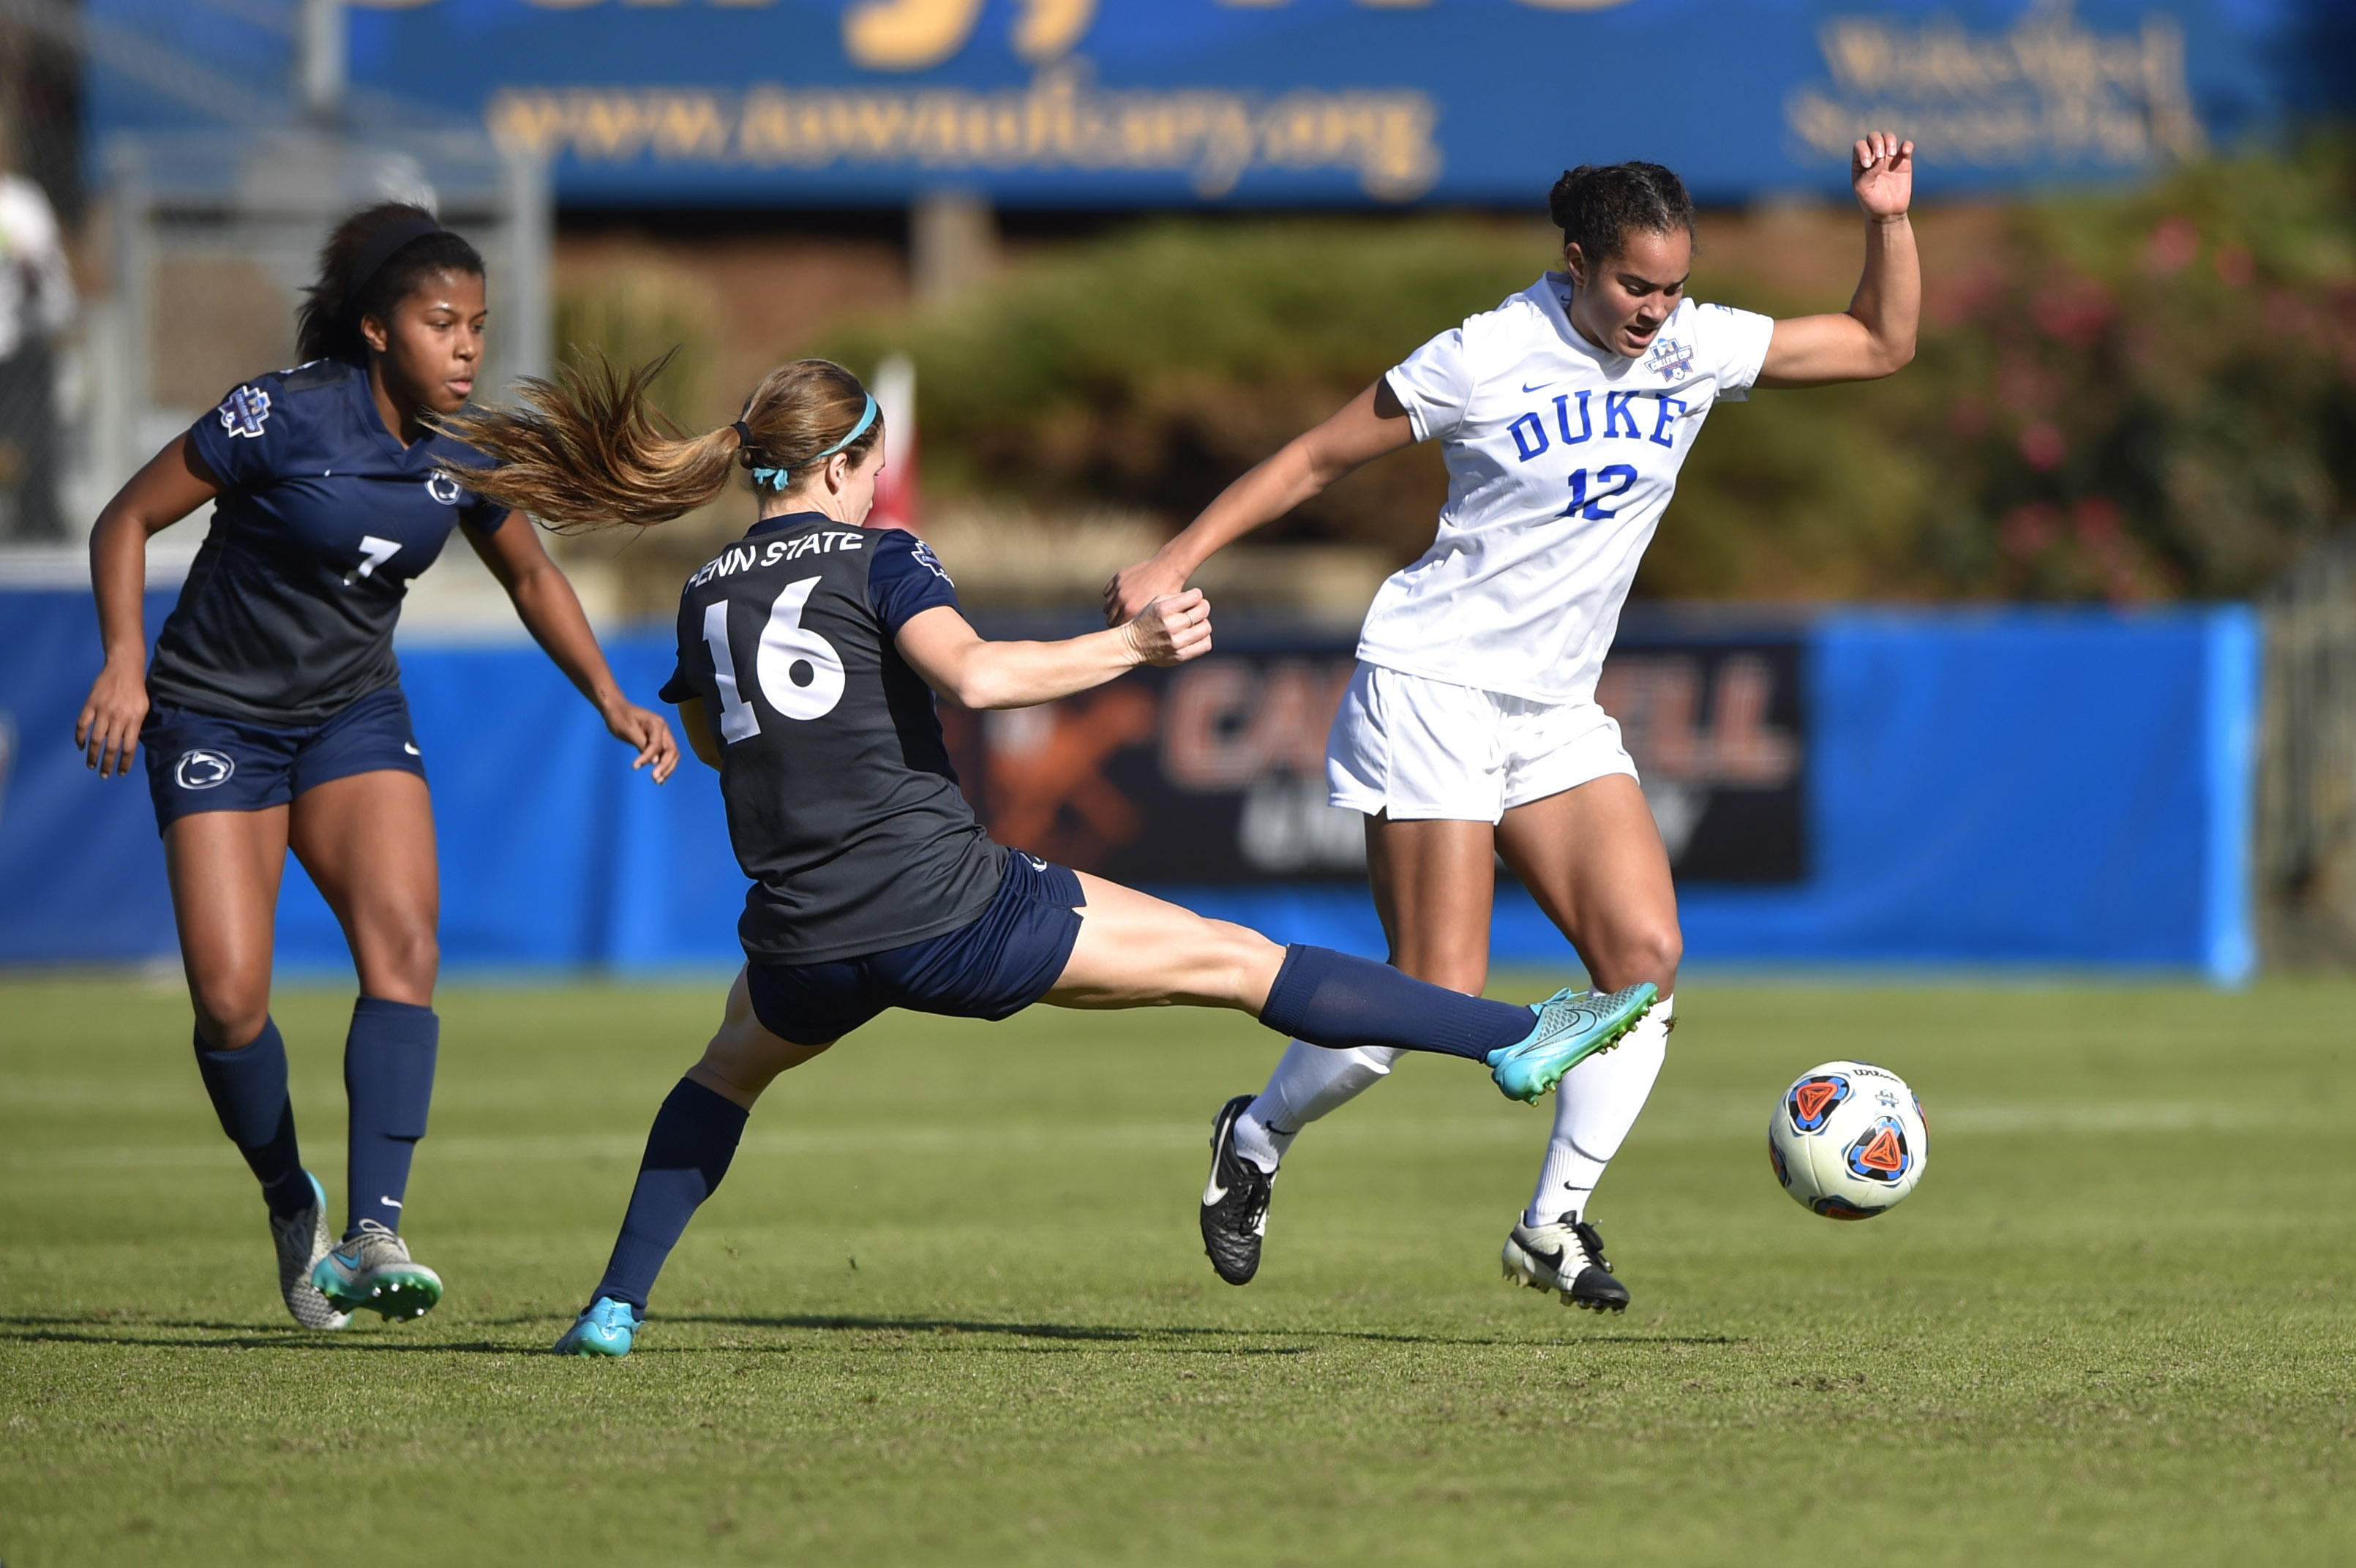 8979785-ncaa-womens-soccer-college-cup-championship-duke-vs-penn-state